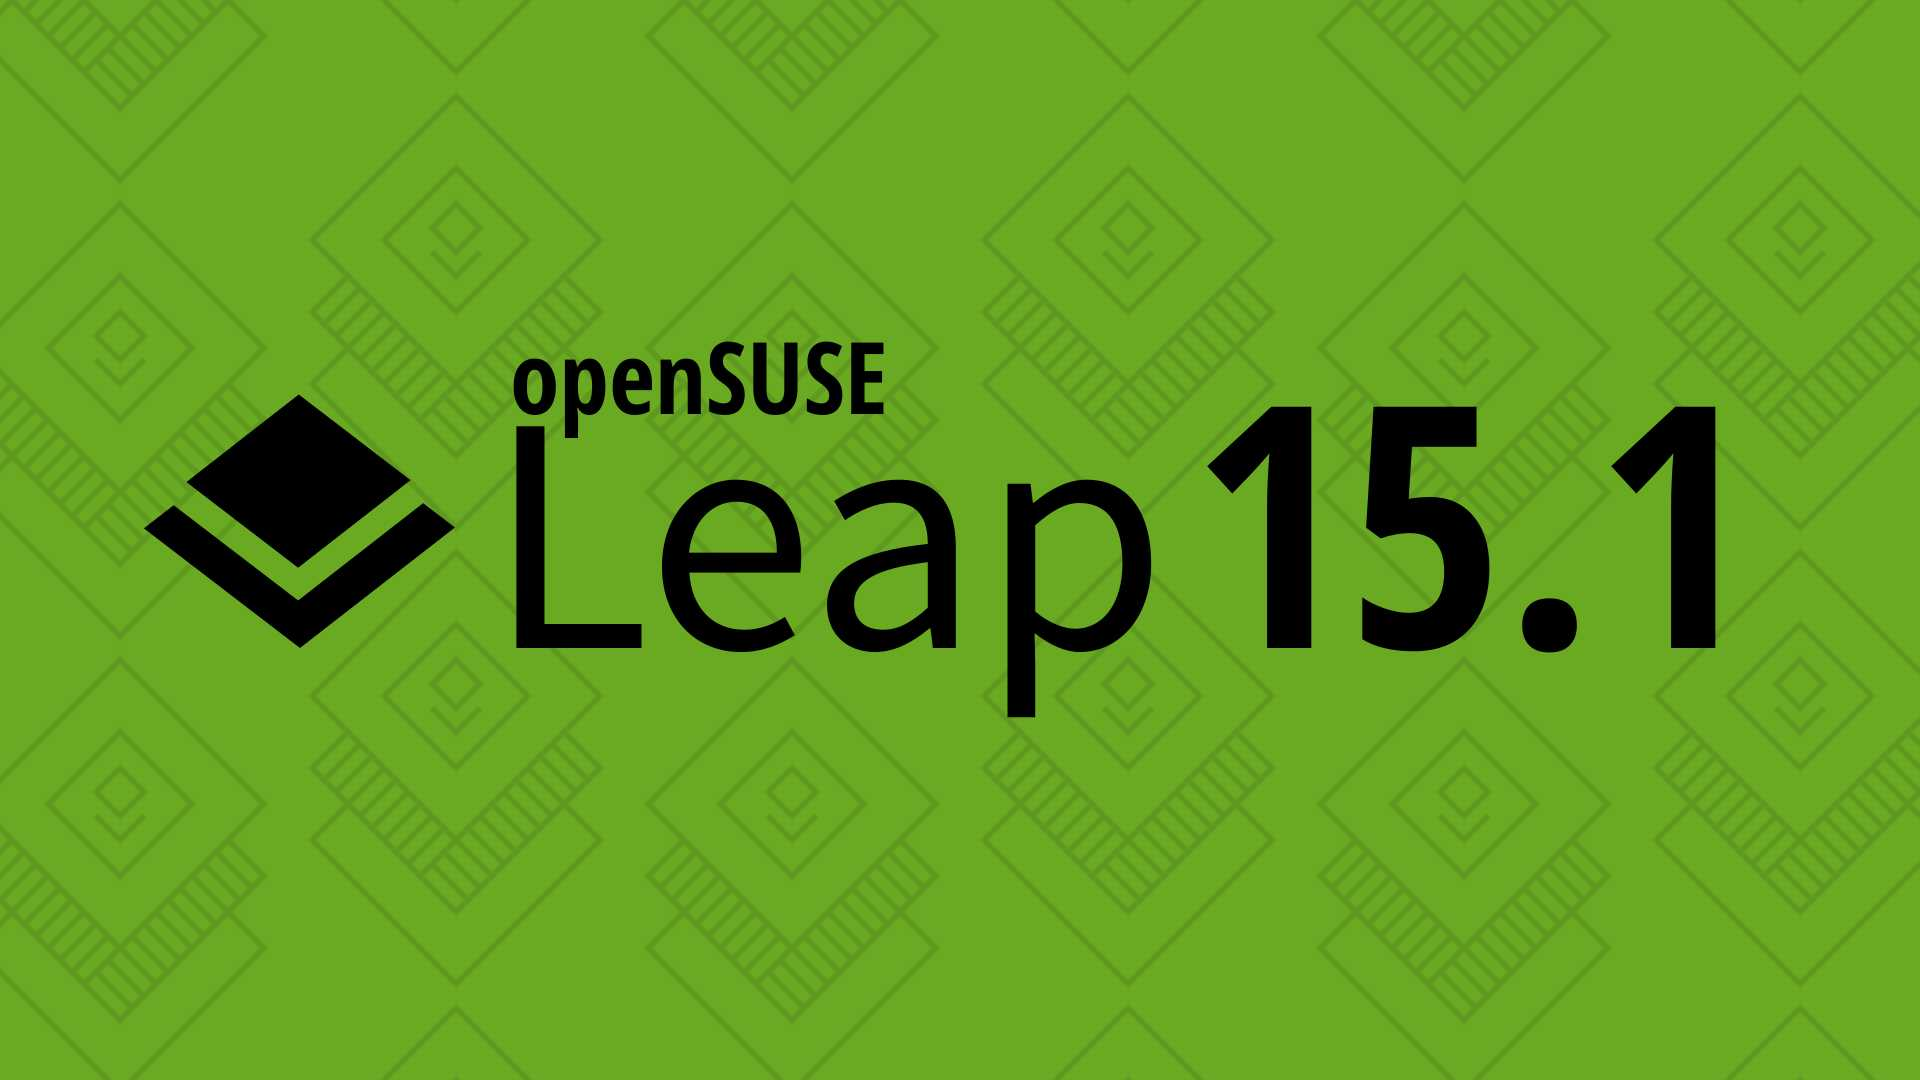 opensuse-leap-15-1-officially-released-based-on-suse-linux